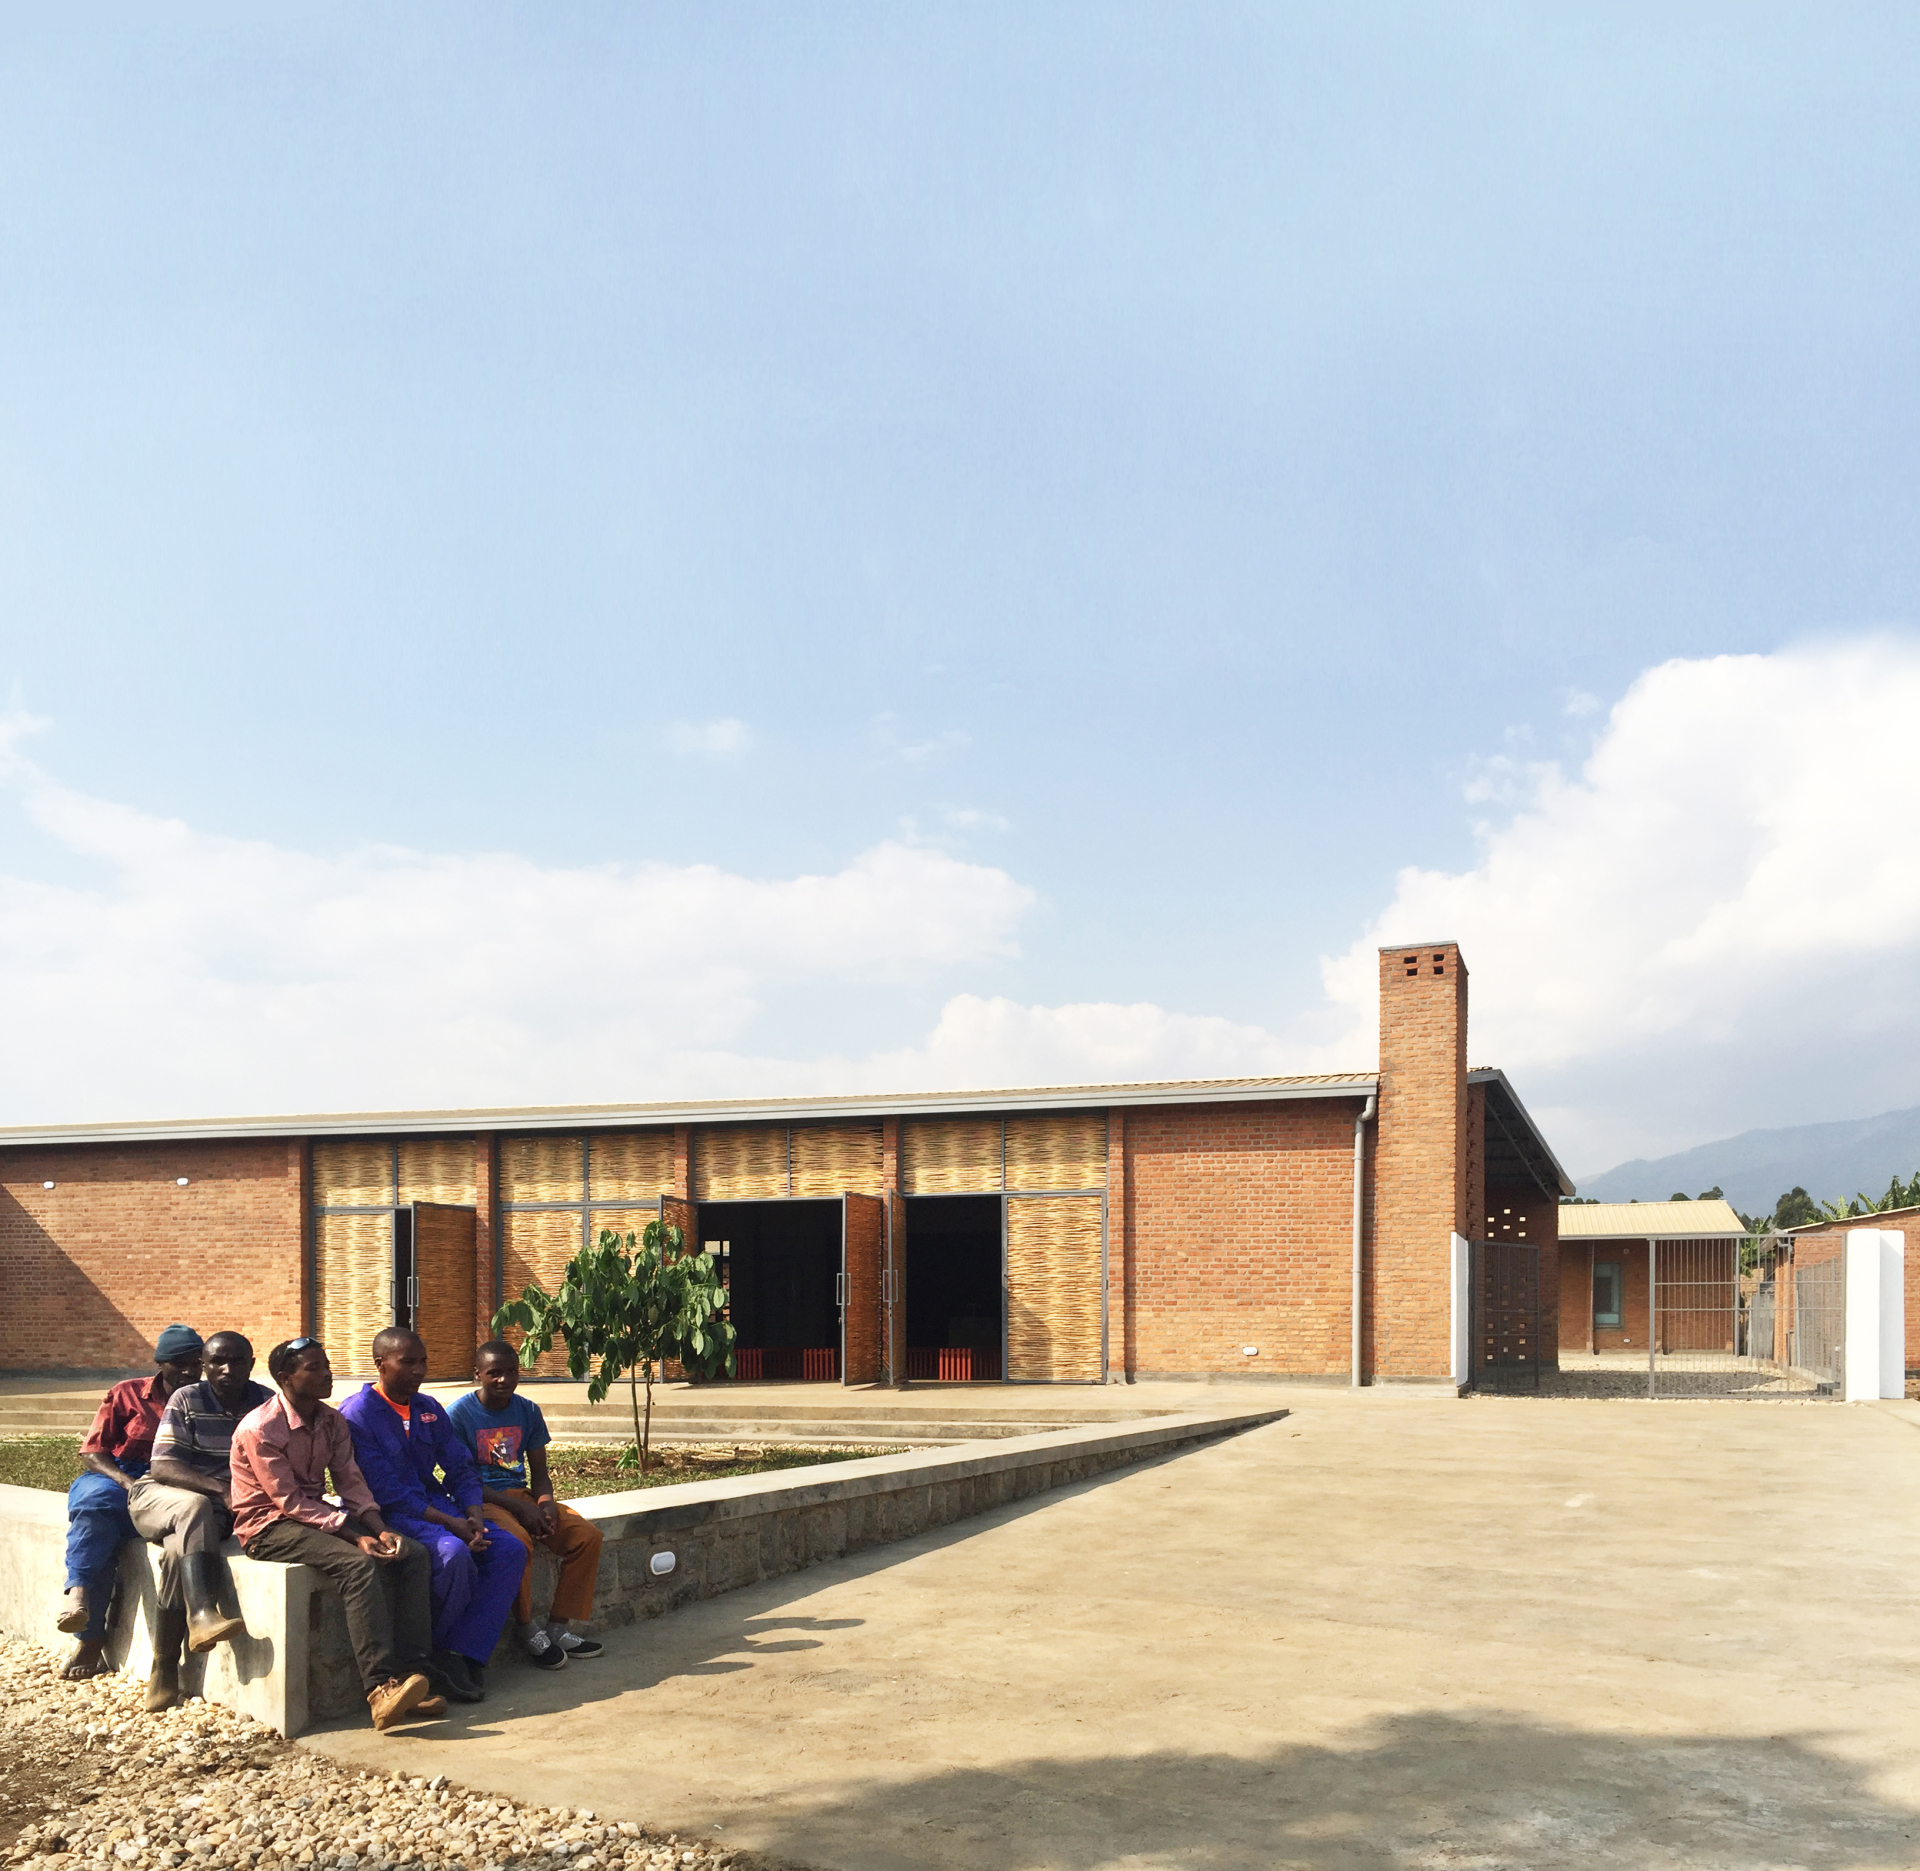 Rugerero Health Center